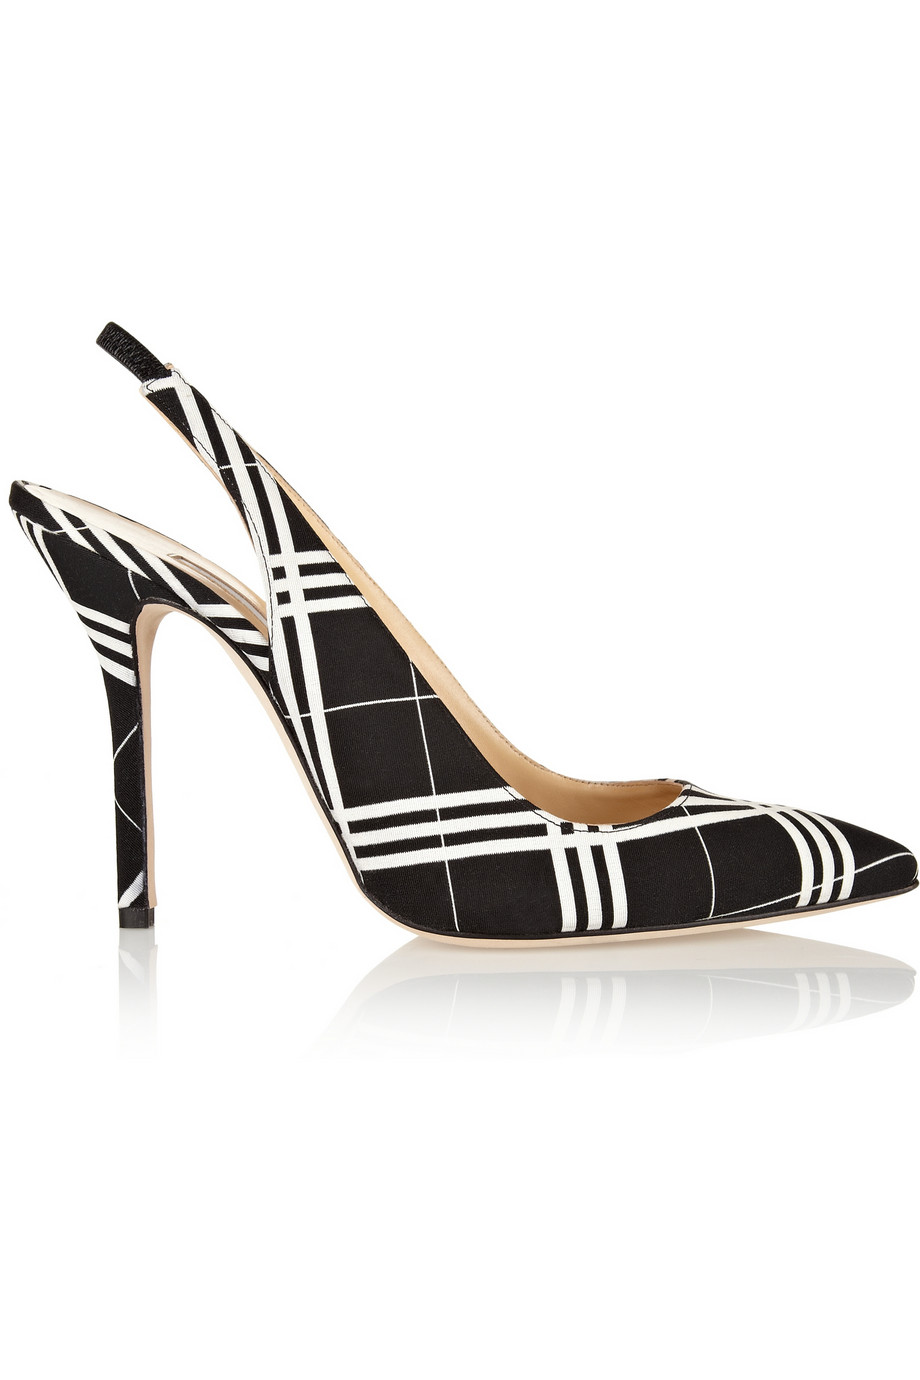 Oscar de la Renta Laura checked grosgrain pumps – 60% at THE OUTNET.COM